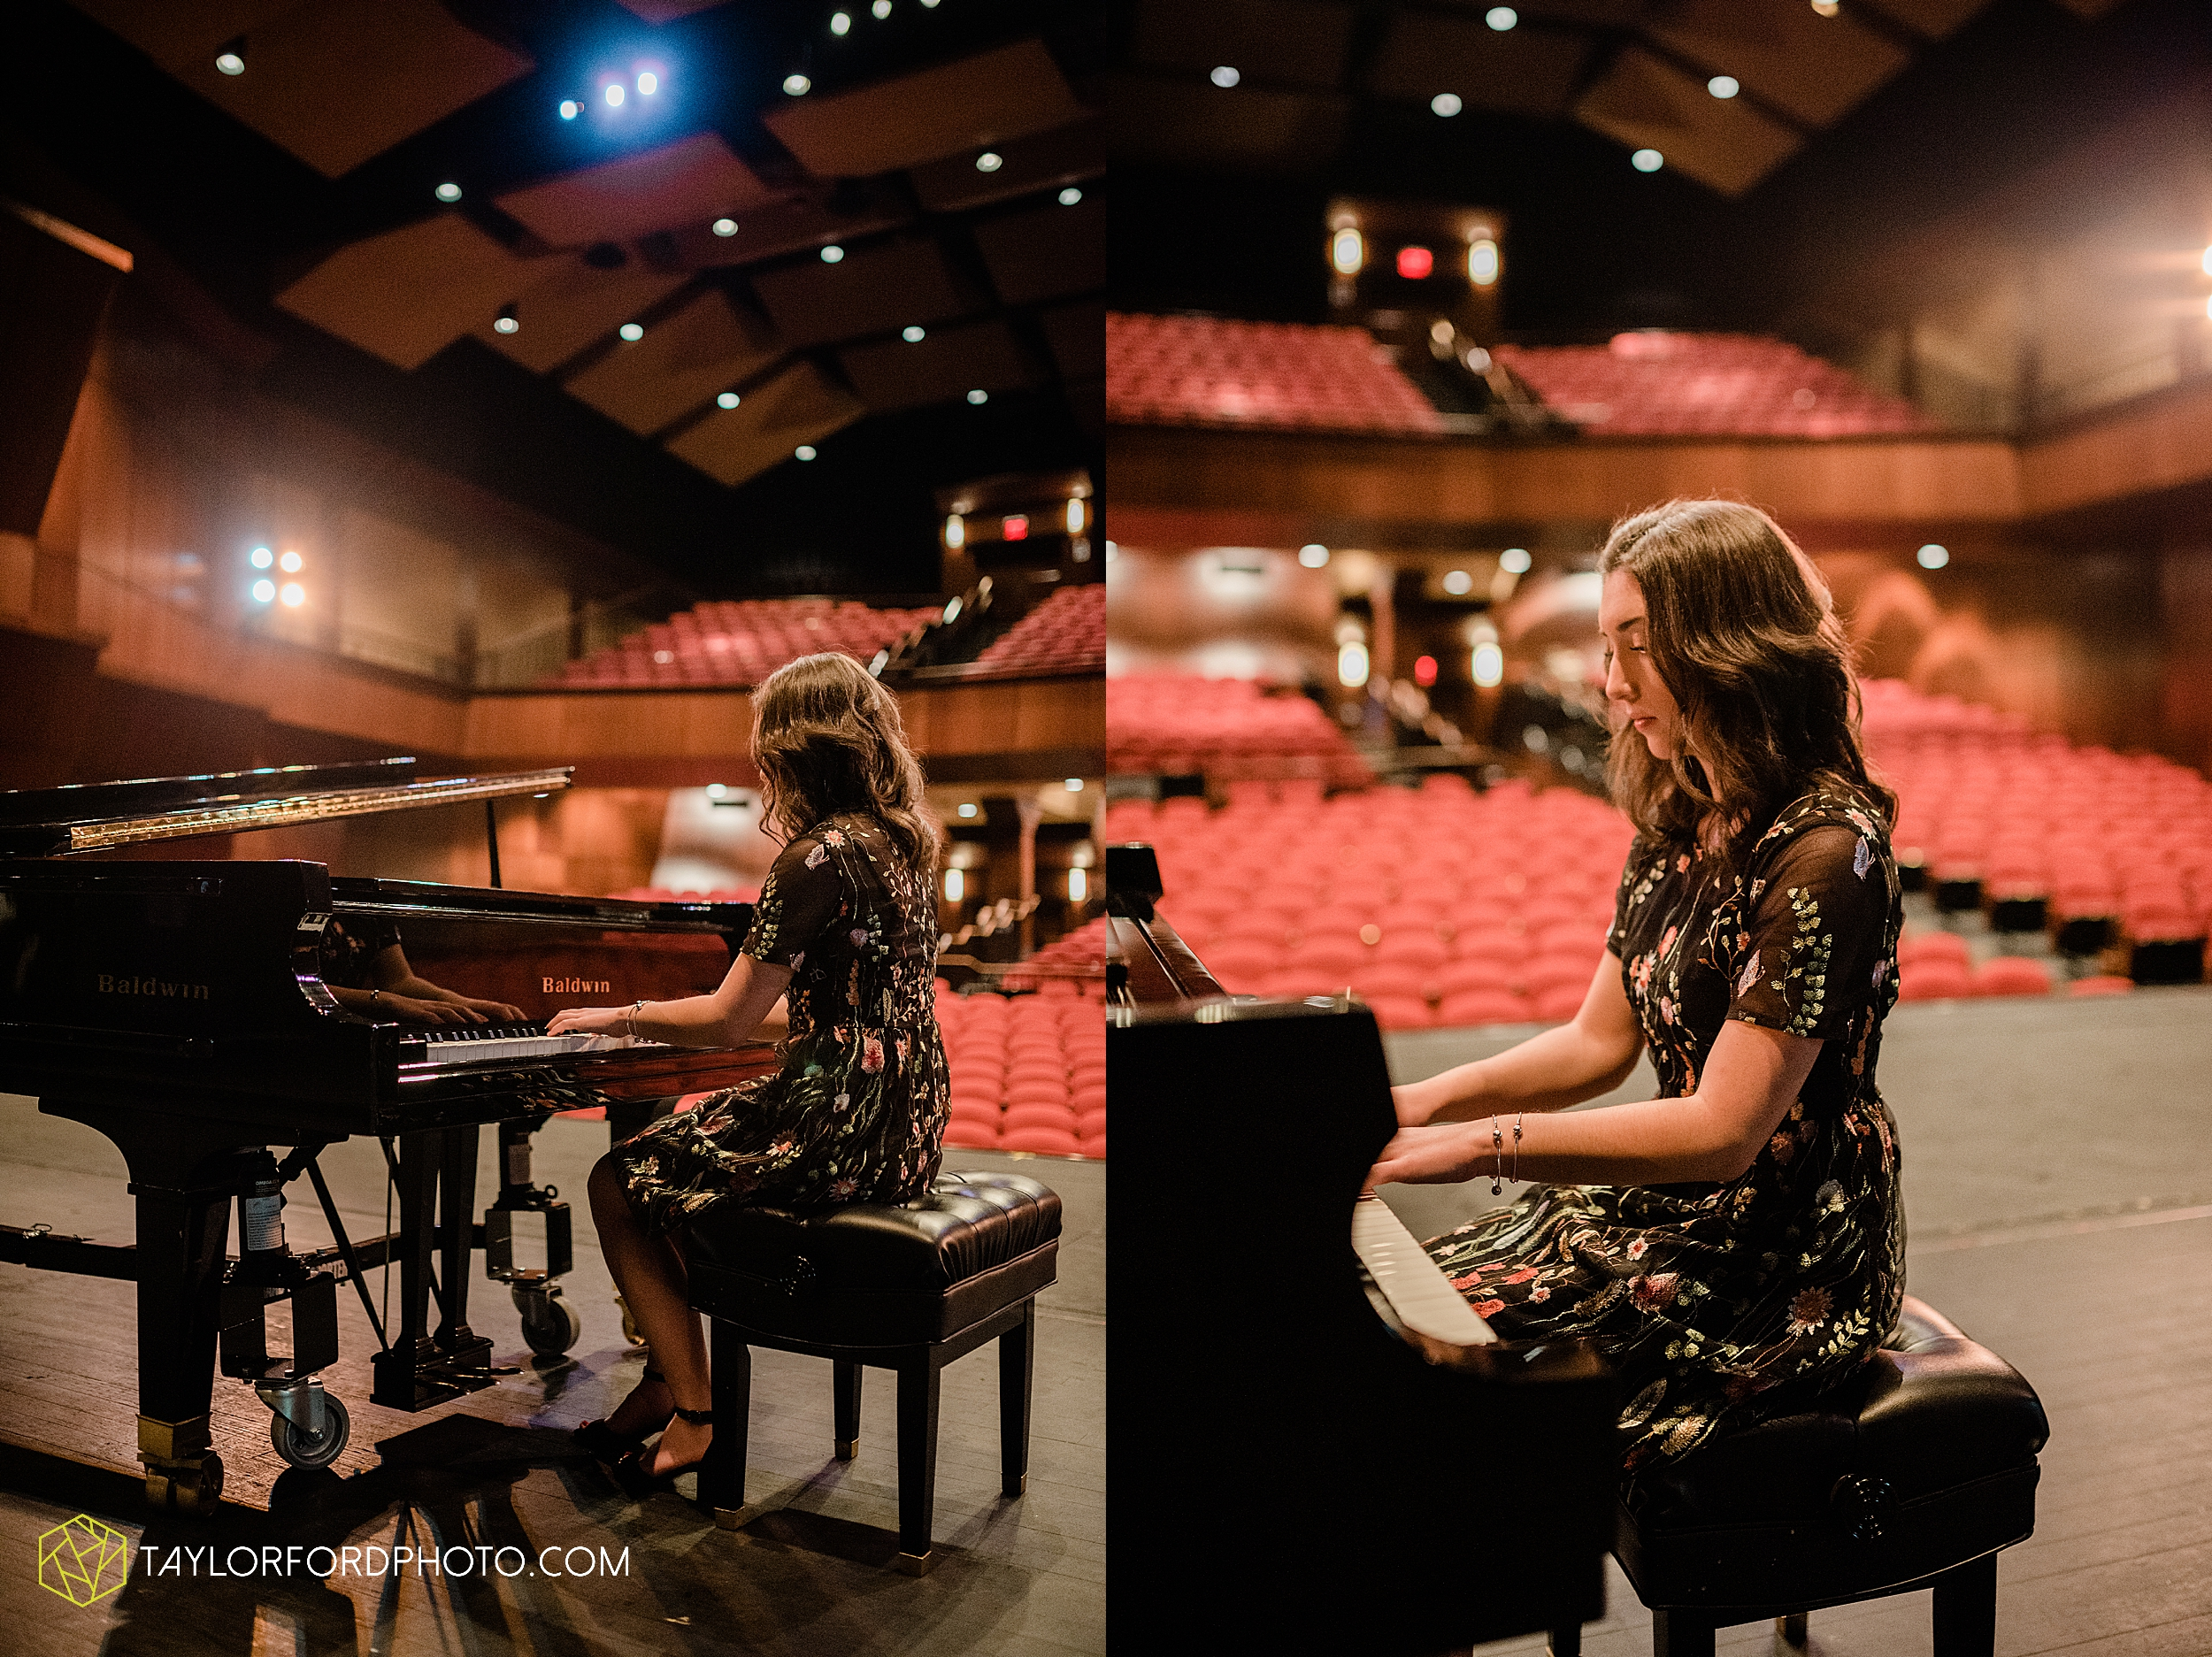 niswonger-performing-arts-center-senior-grand-piano-van-wert-ohio-photography-taylor-ford-hirschy-photographer_2105.jpg